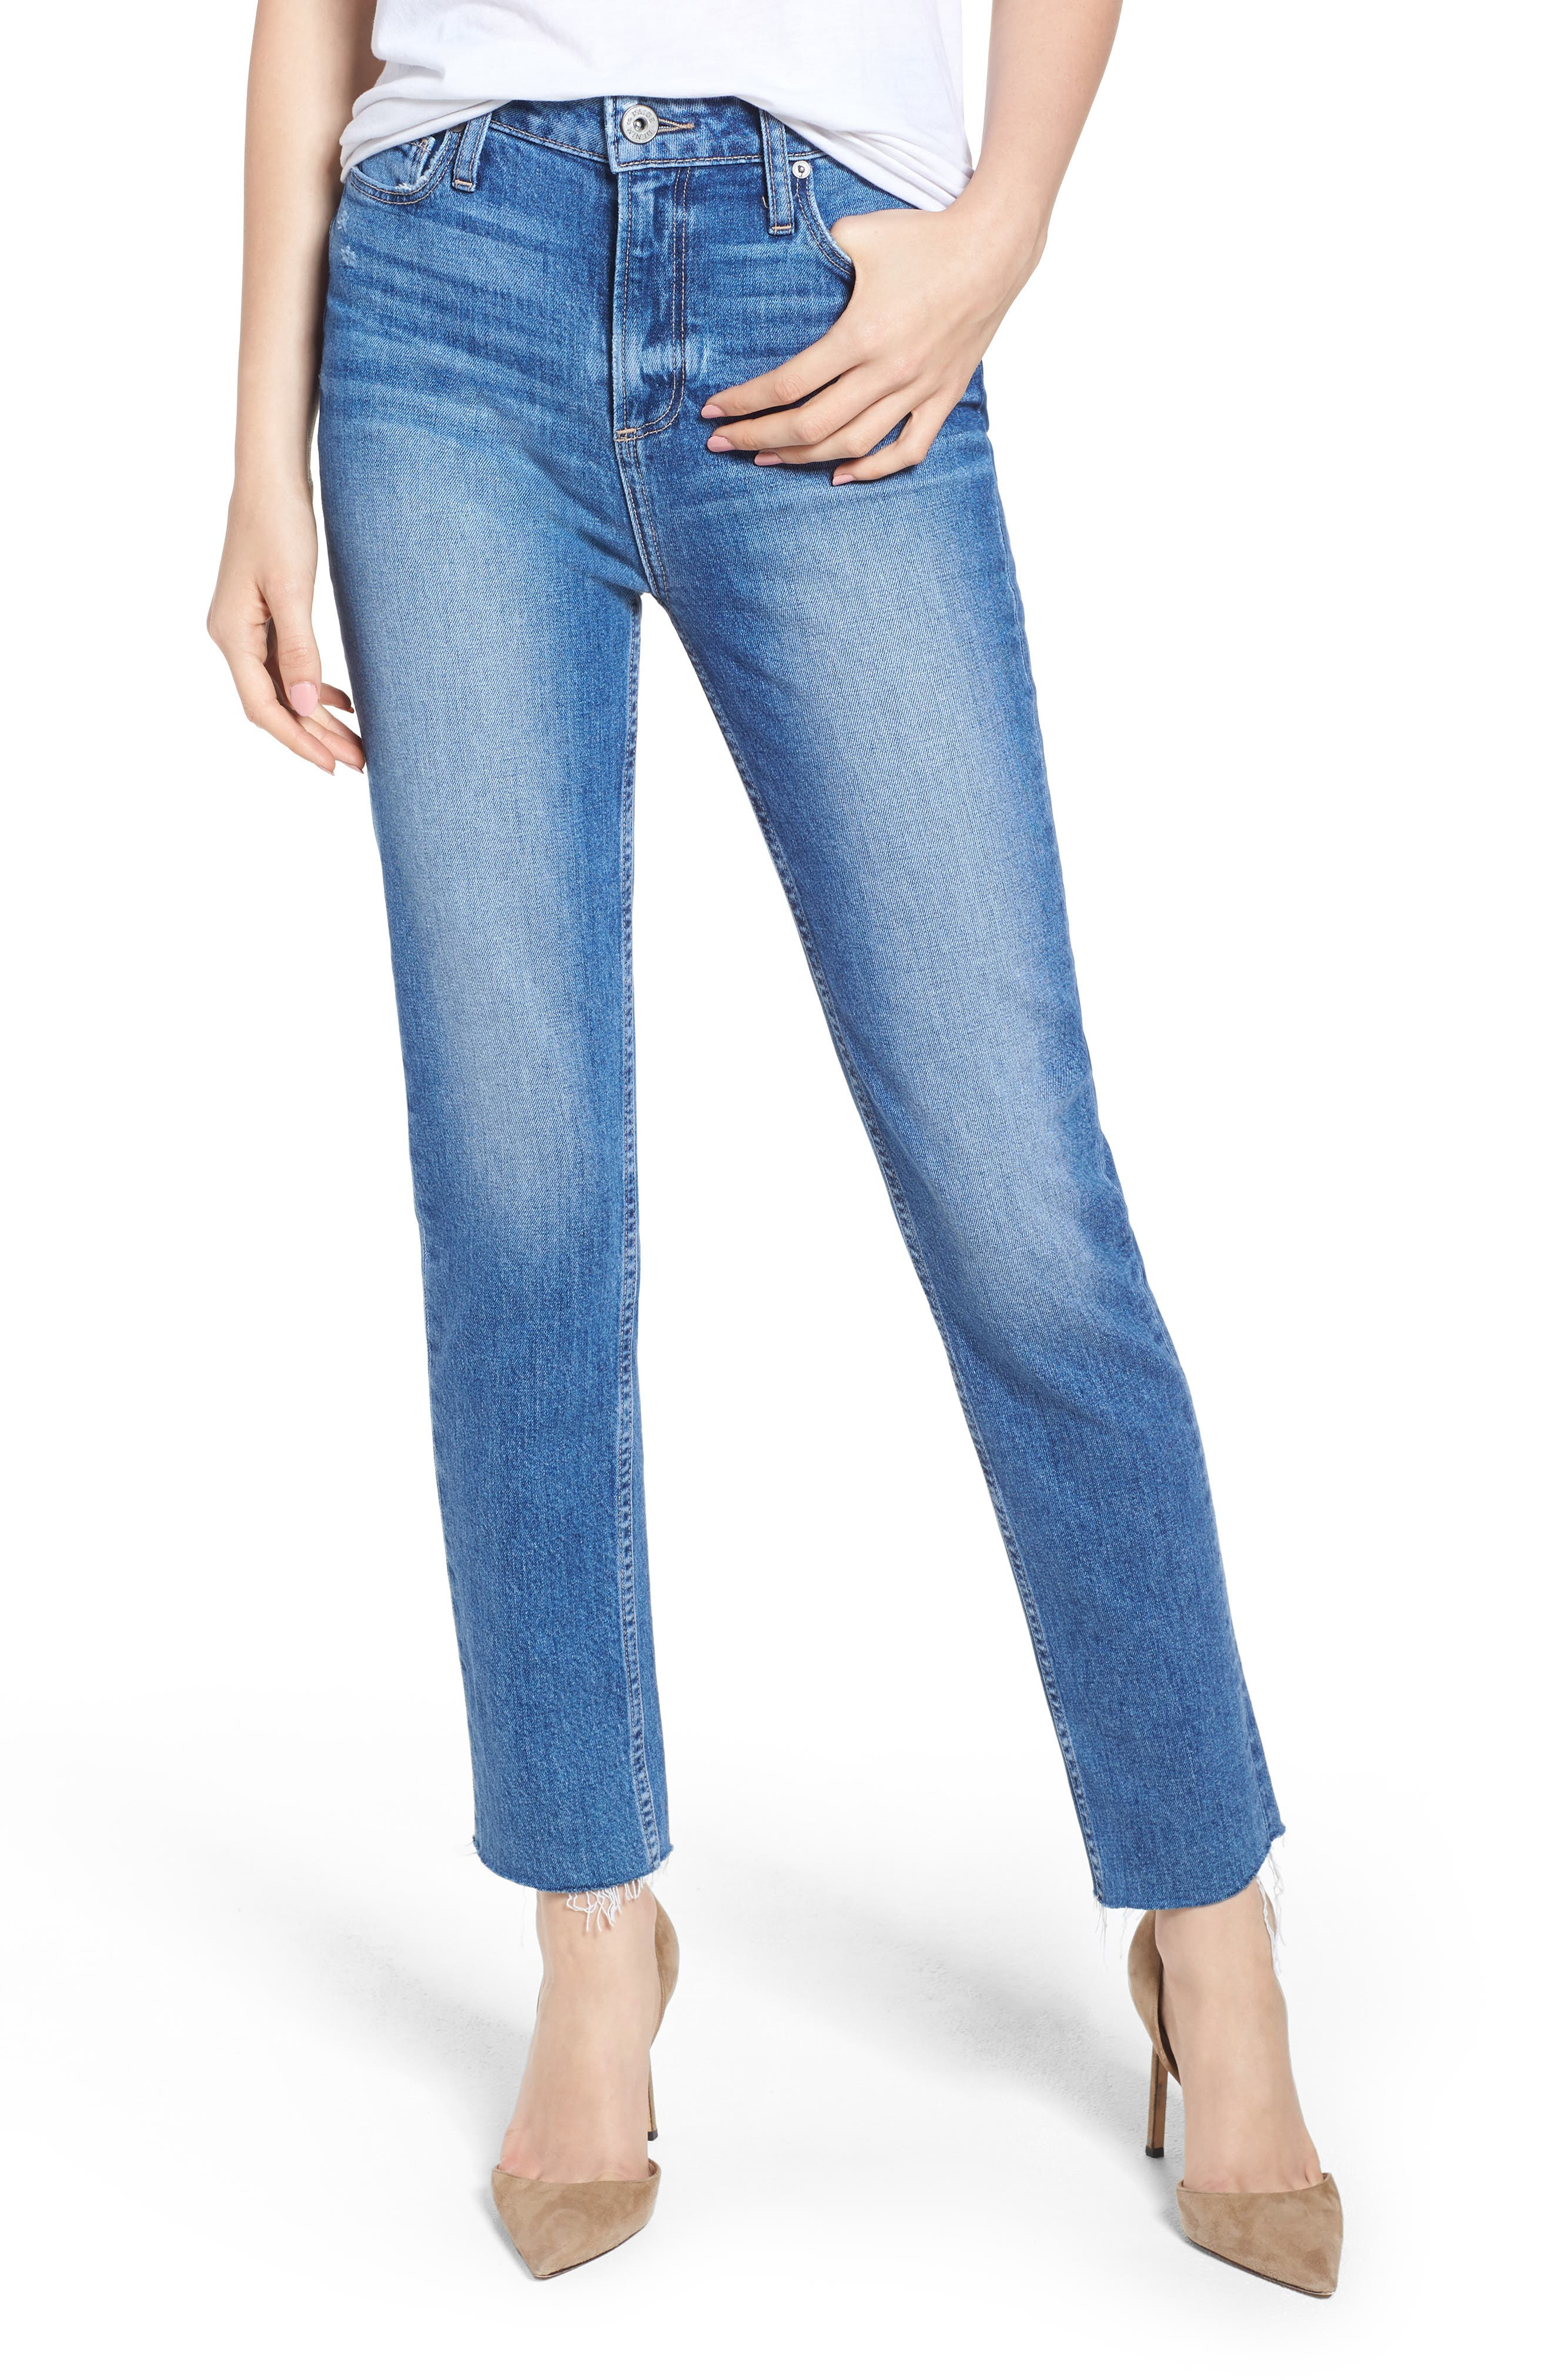 PAIGE Vintage Hoxton High Waist Slim Raw Hem Jeans, Main, color, BIRDIE